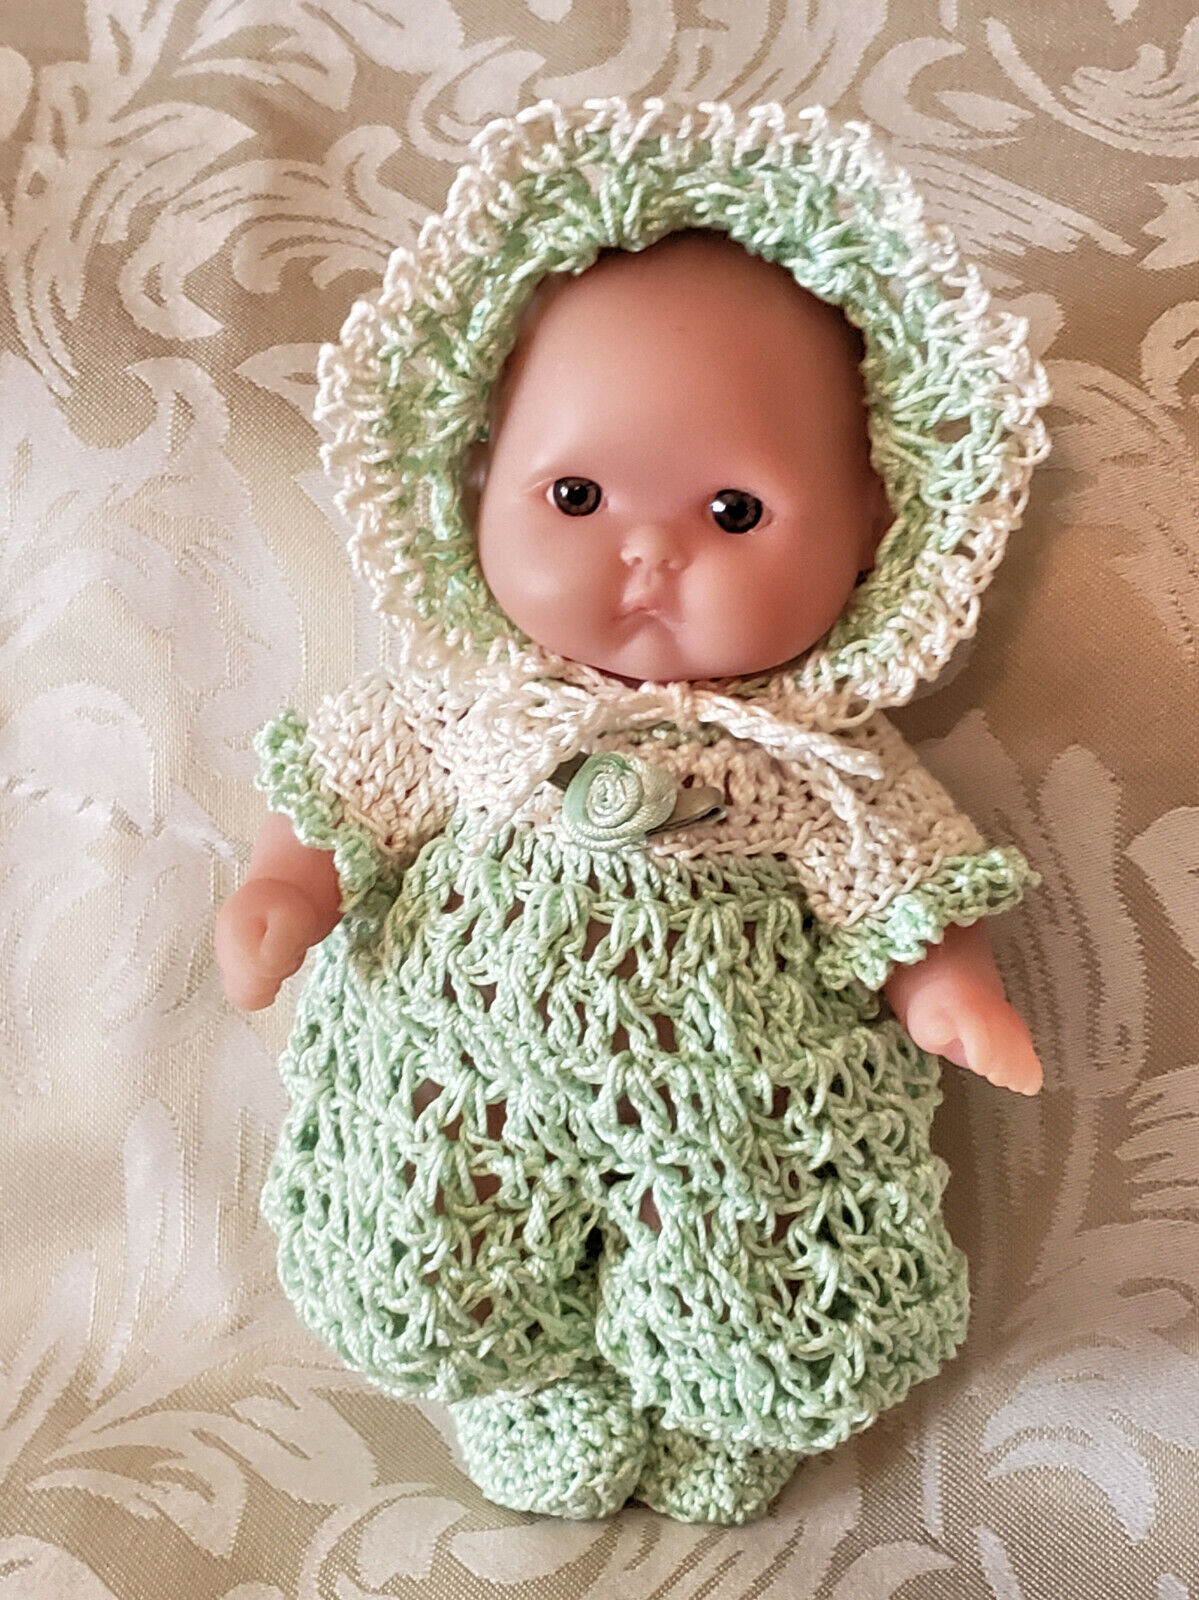 Romper Set For 5 Mini Baby Doll Berenguer Crochet Clothes Outfit Itty Bitty - $18.75